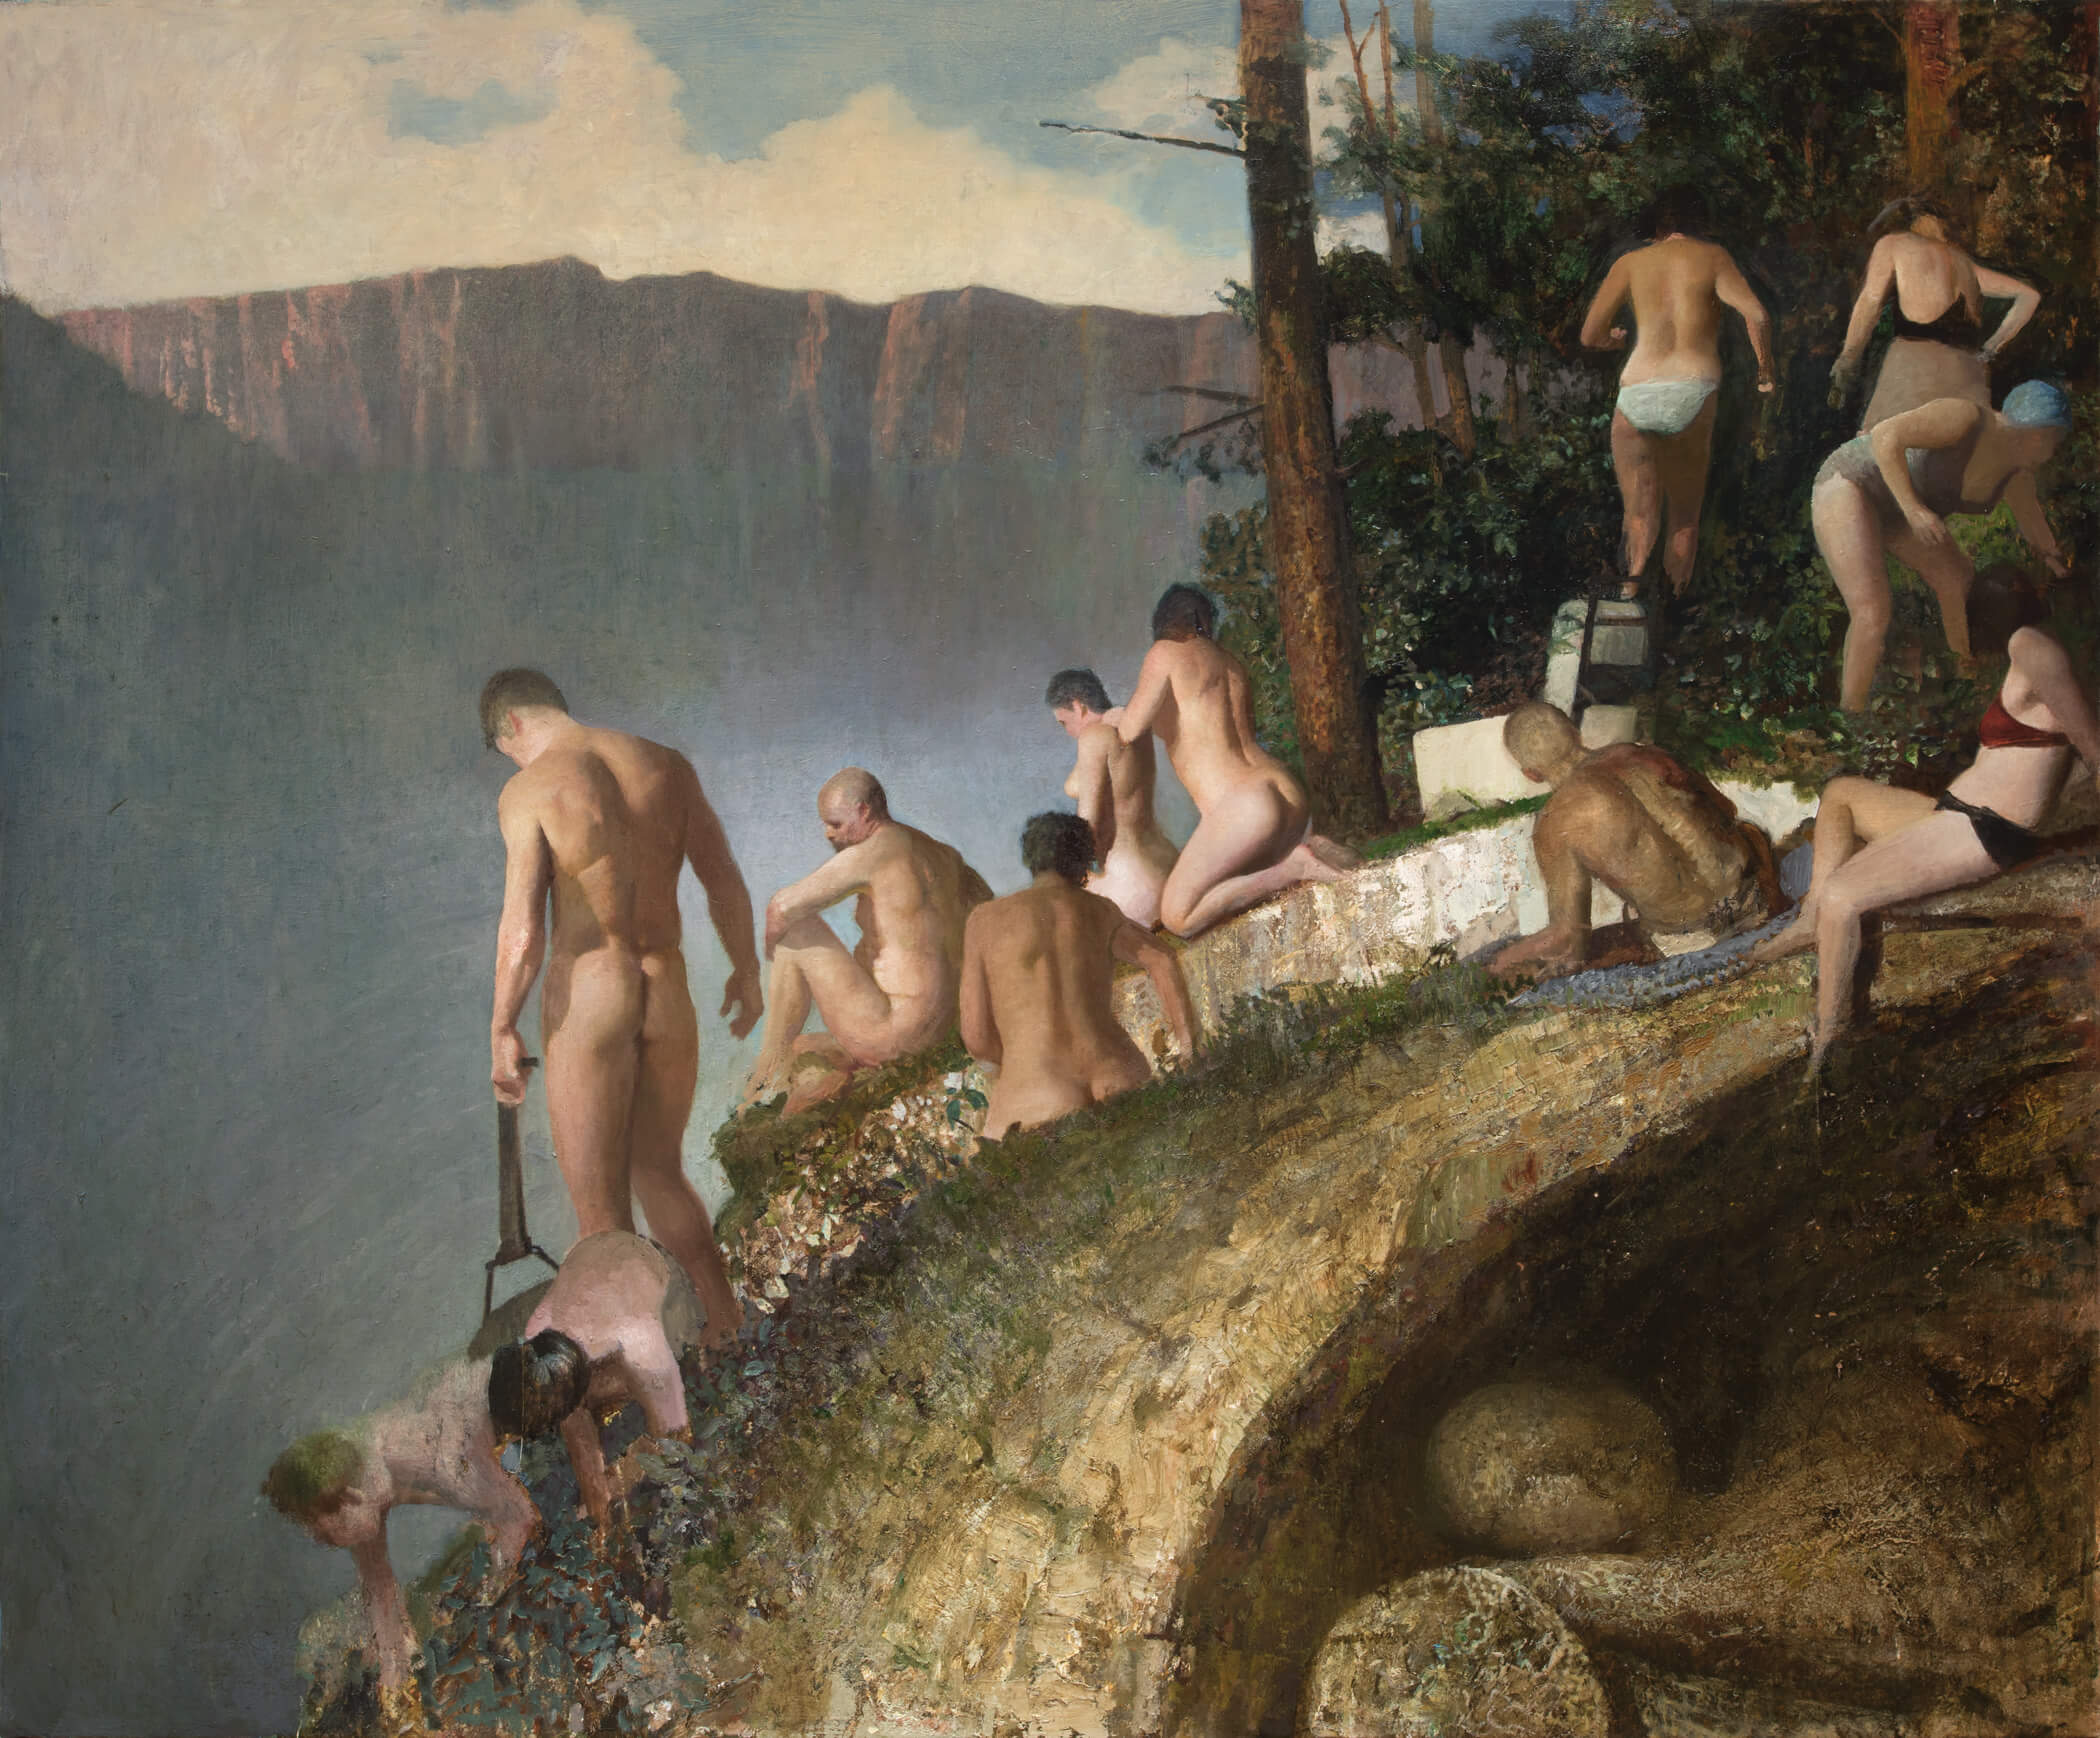 Vincent Desiderio, Bathers, 2017, oil on canvas, 57 x 69 inches (© Vincent Desiderio, courtesy Marlborough Gallery, New York)